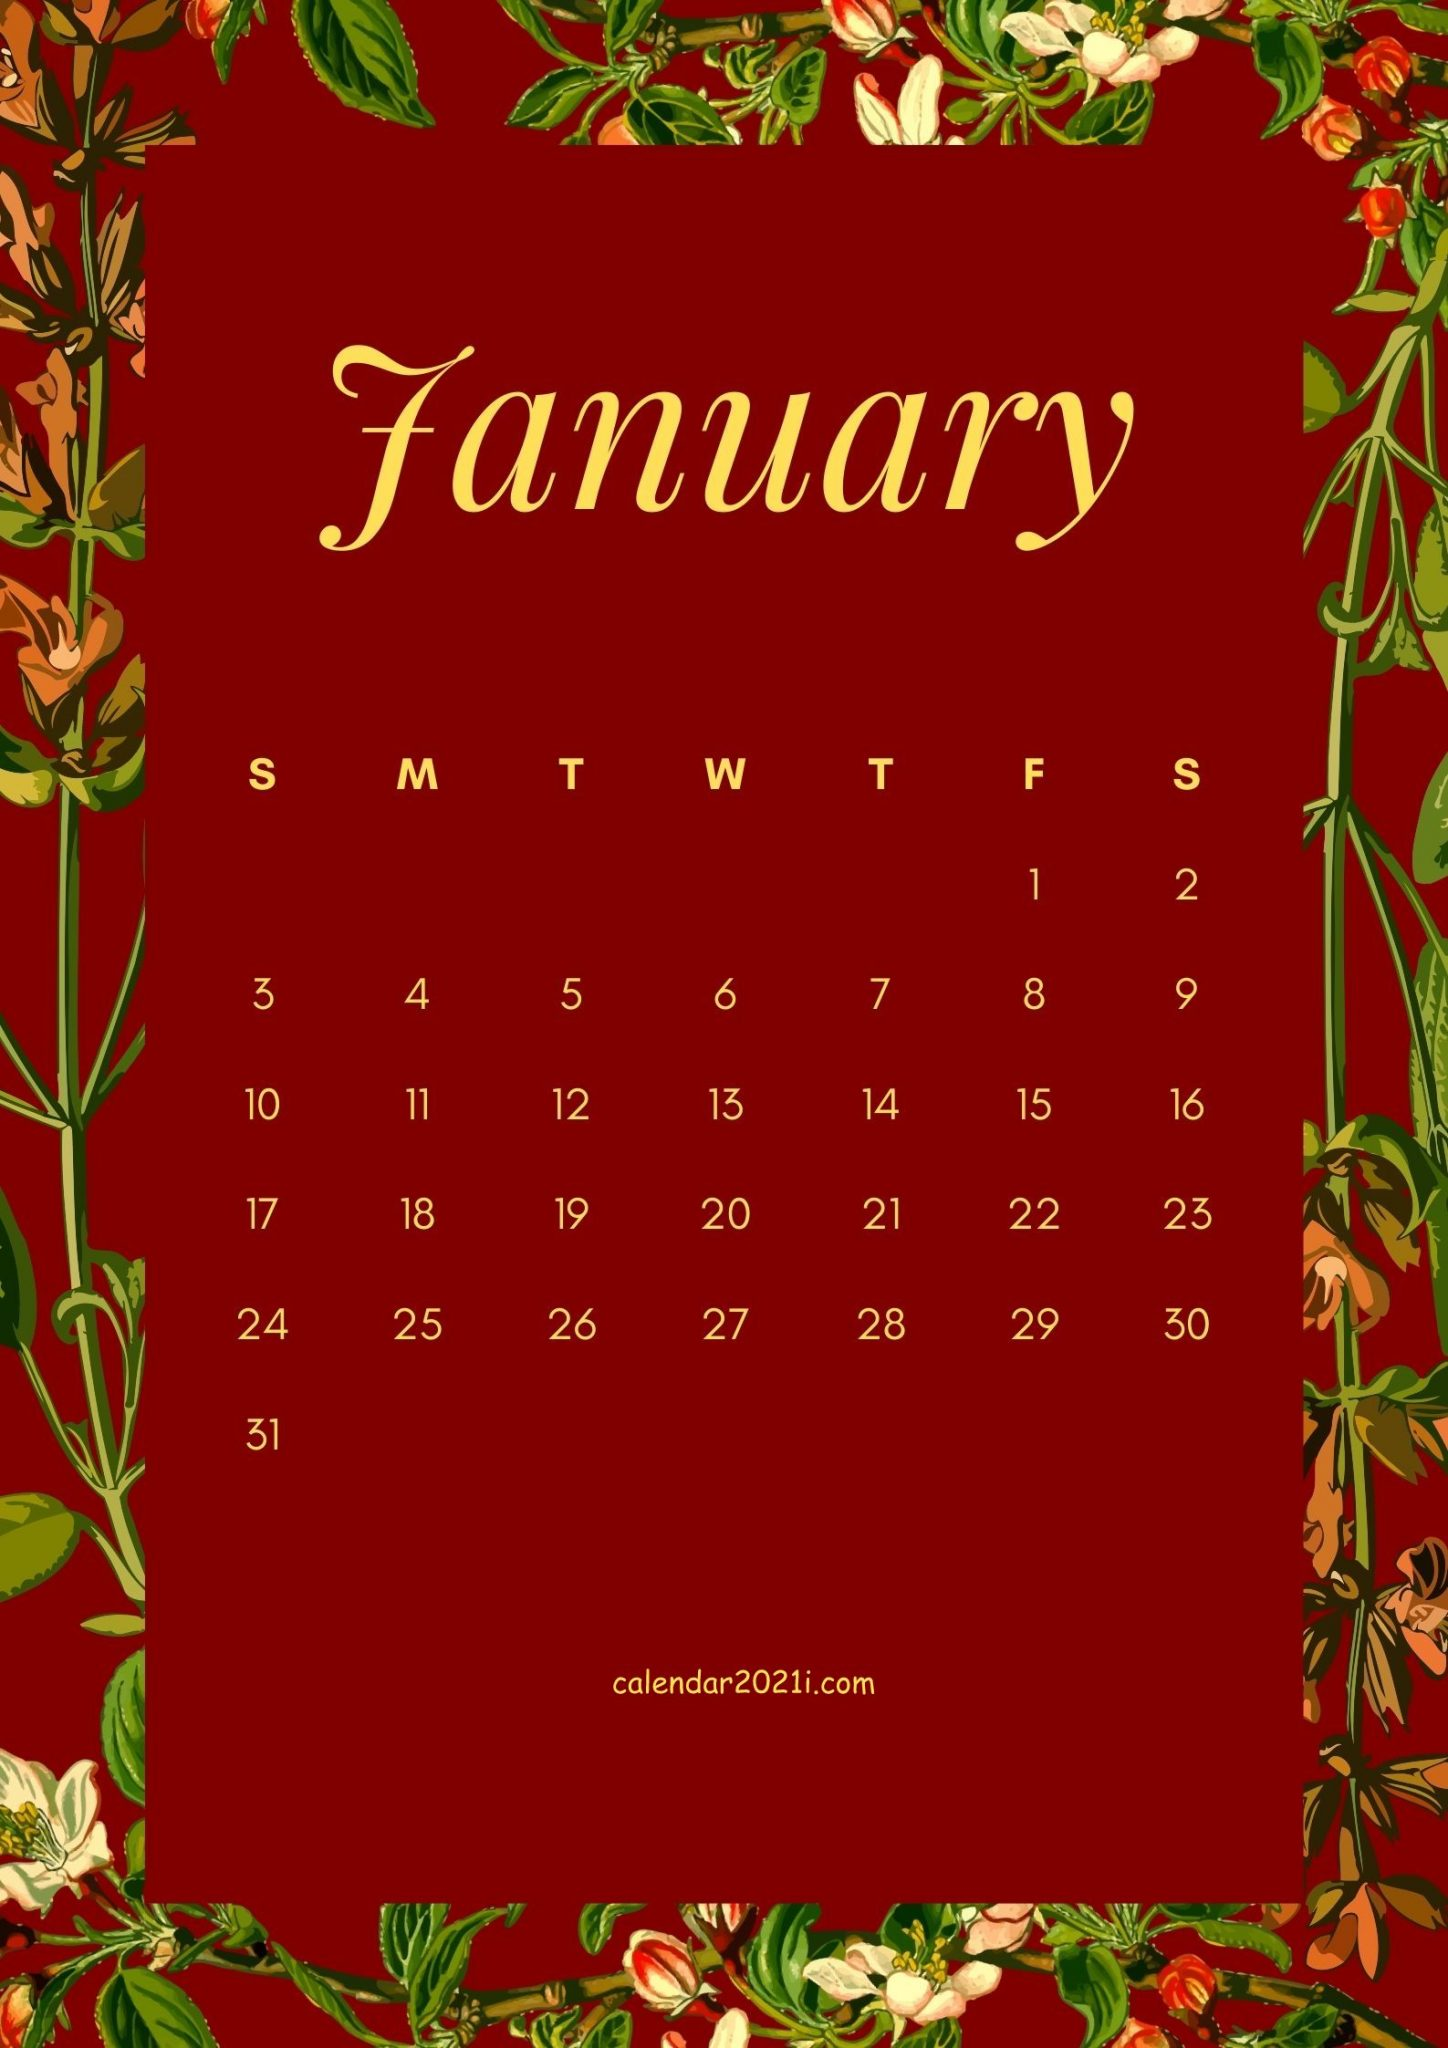 January 2021 Floral Calendar Download